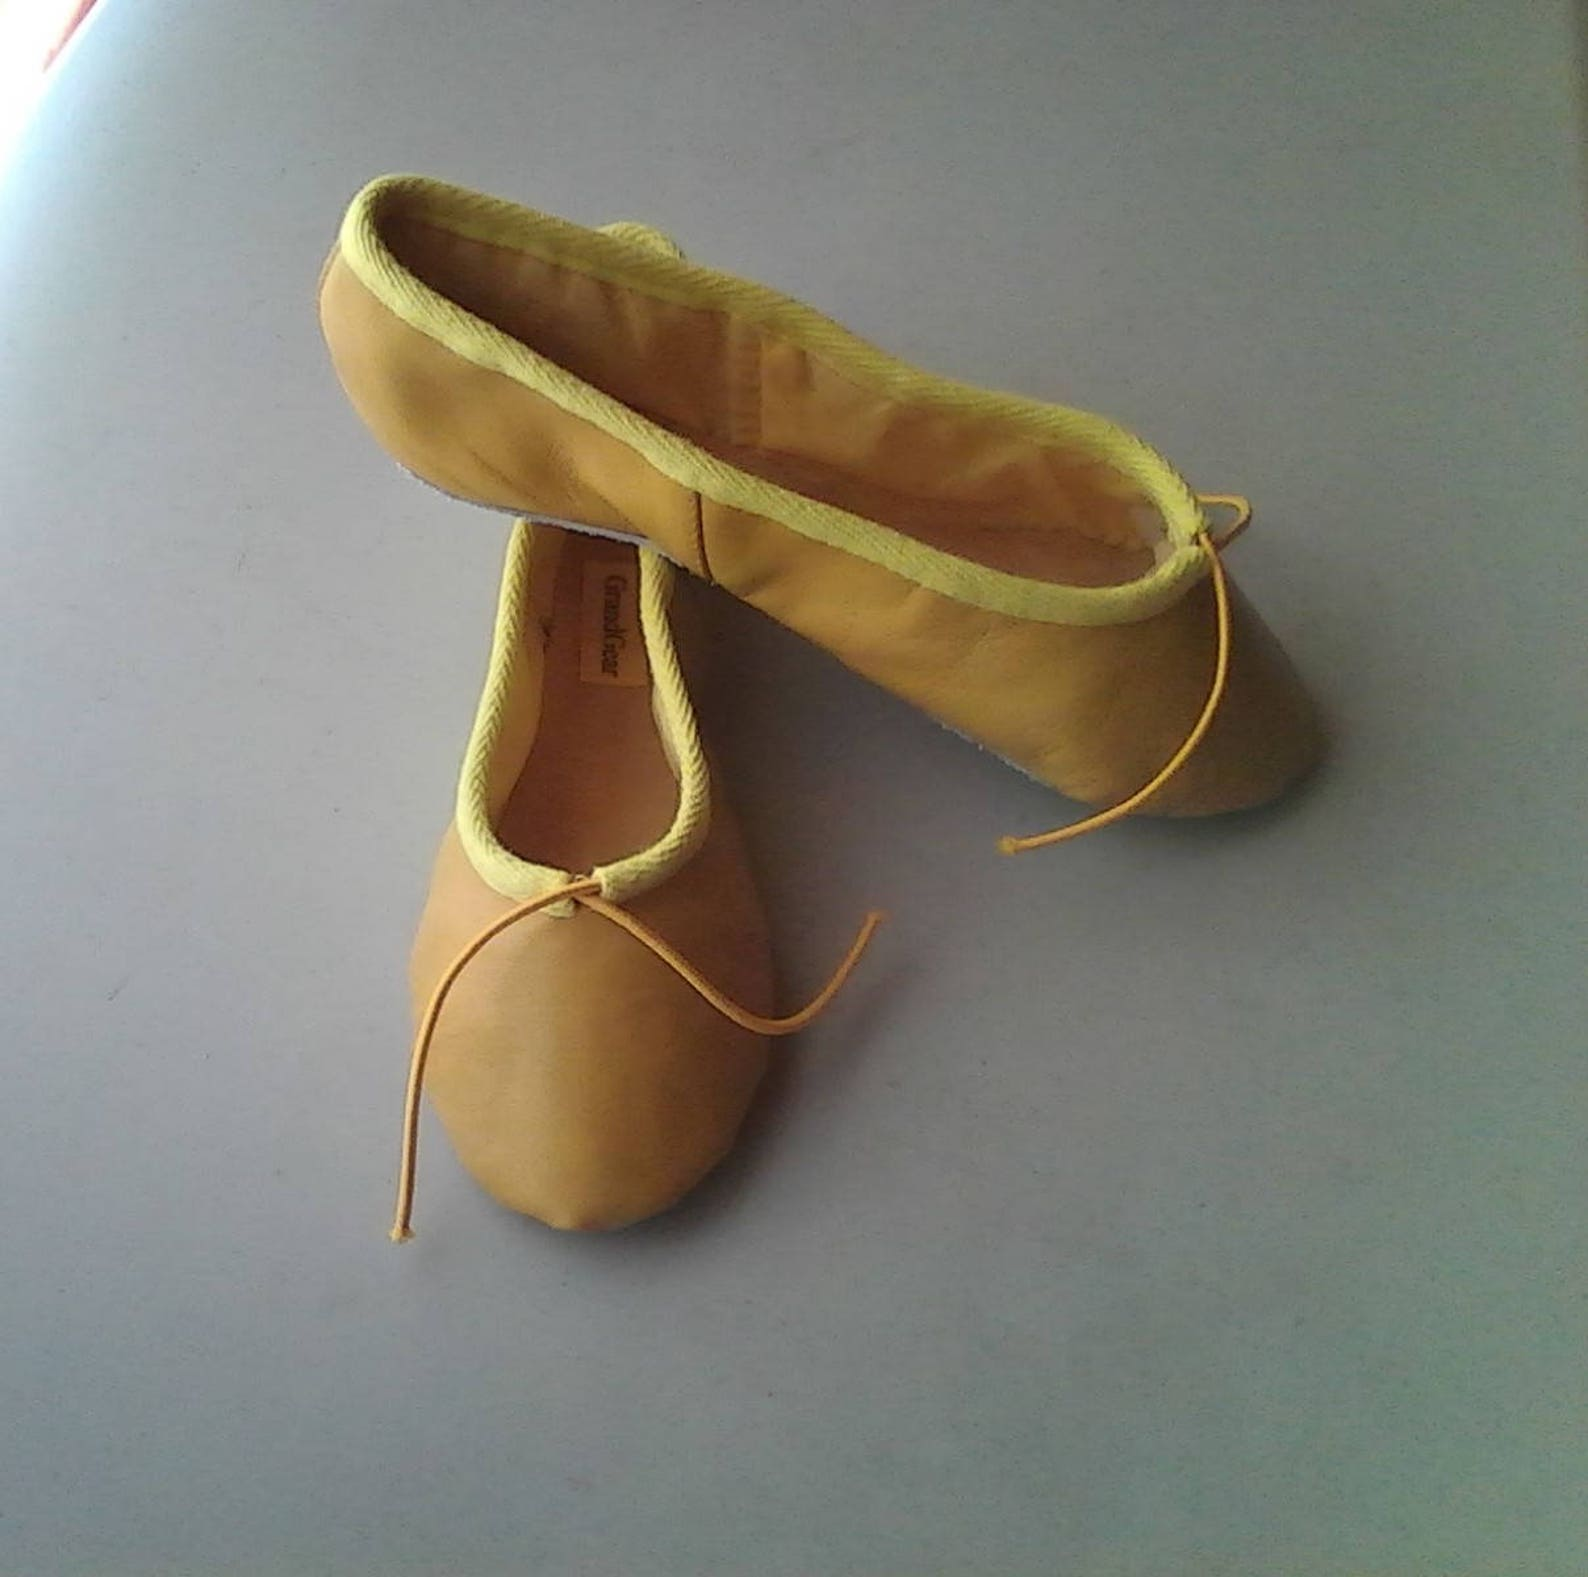 mustard yellow leather ballet shoes - full sole - adult sizes